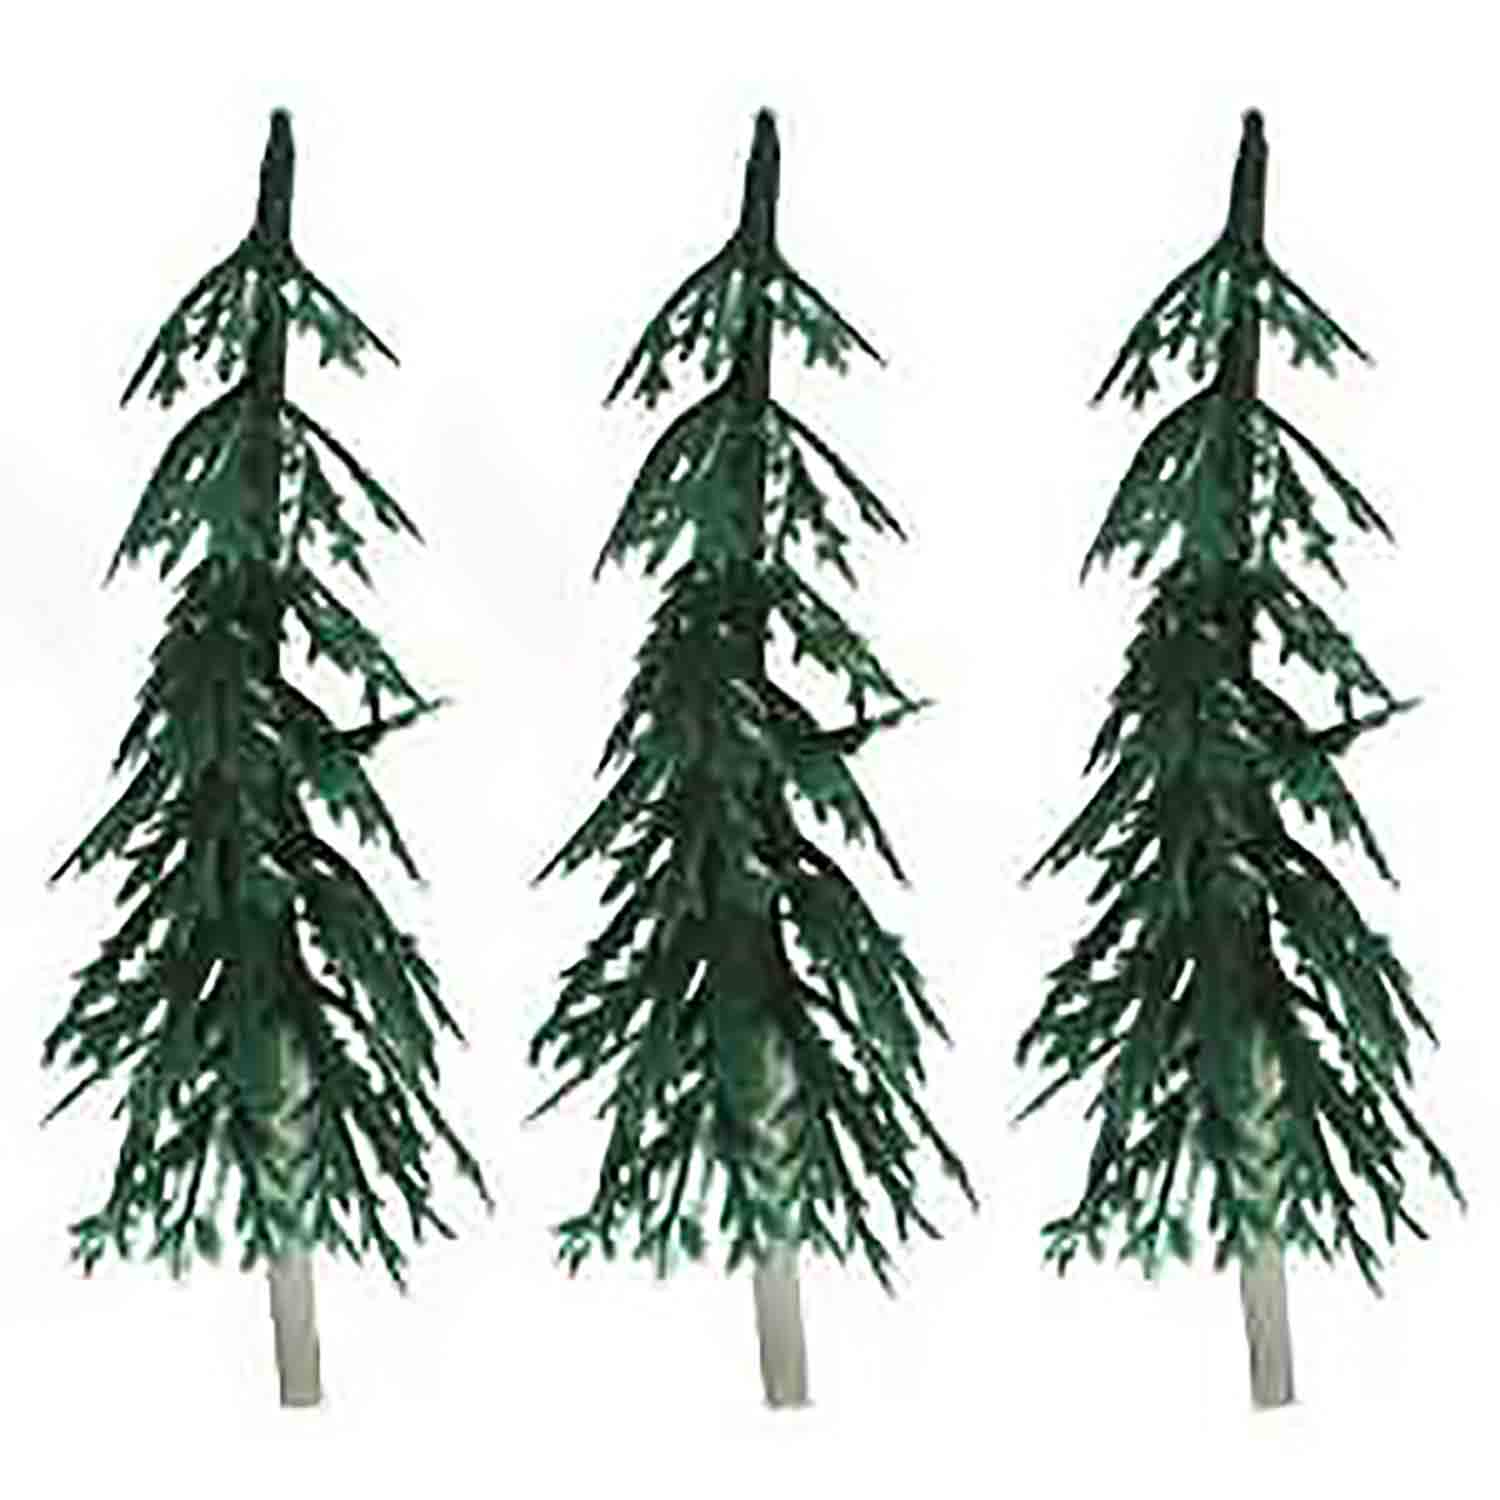 Small Evergreen Trees